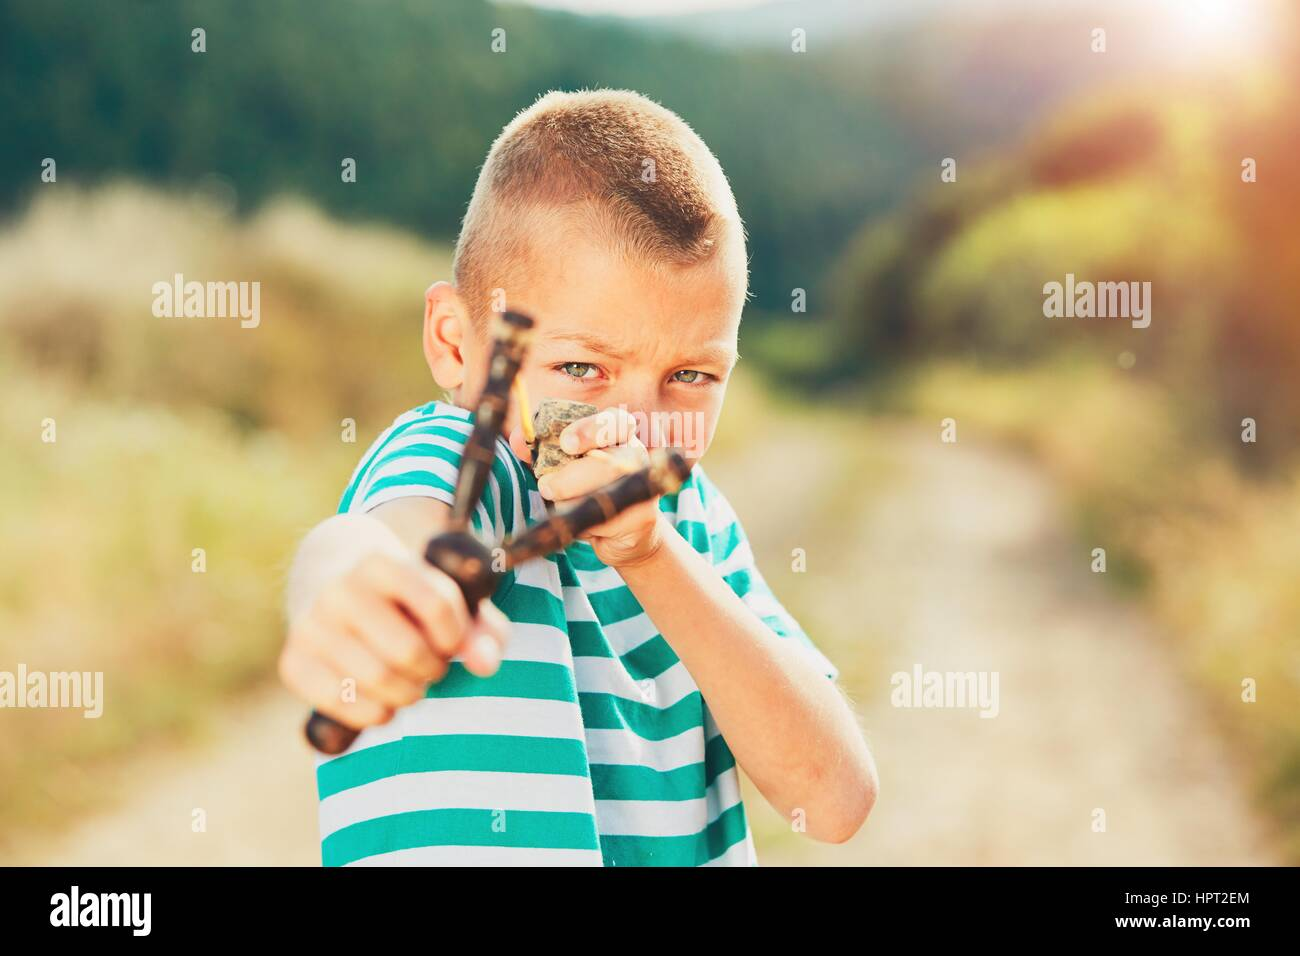 Naughty boy holding slingshot with stone. Little boy is playing in rural landscape. Stock Photo